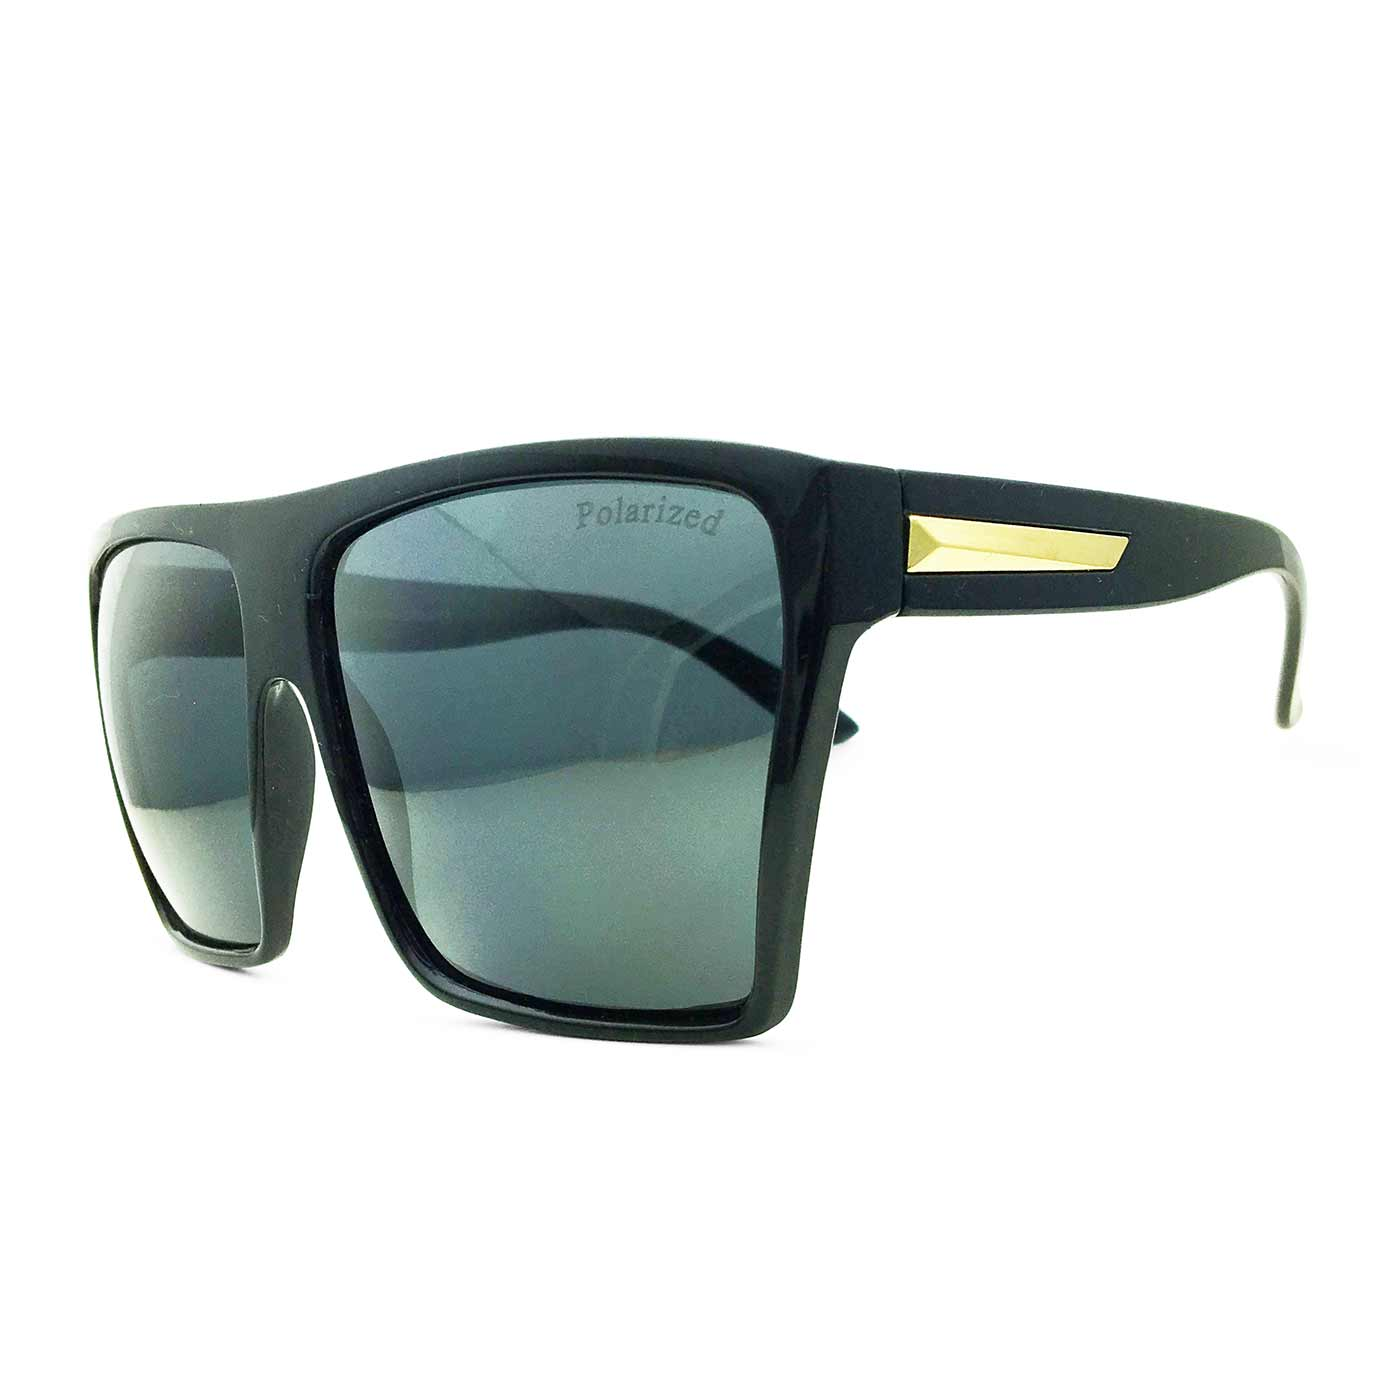 Big Drops with Polarized Lenses in Semi Black Out